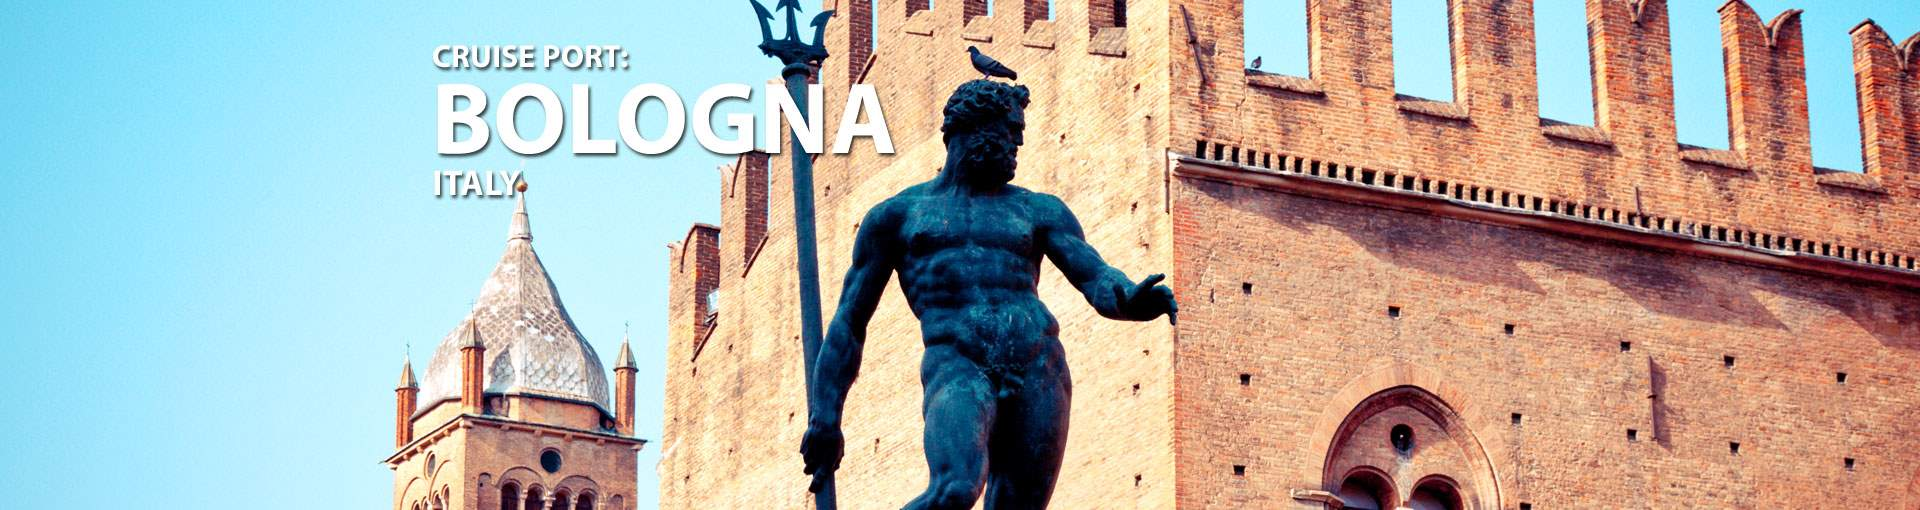 Cruises to Bologna, Italy